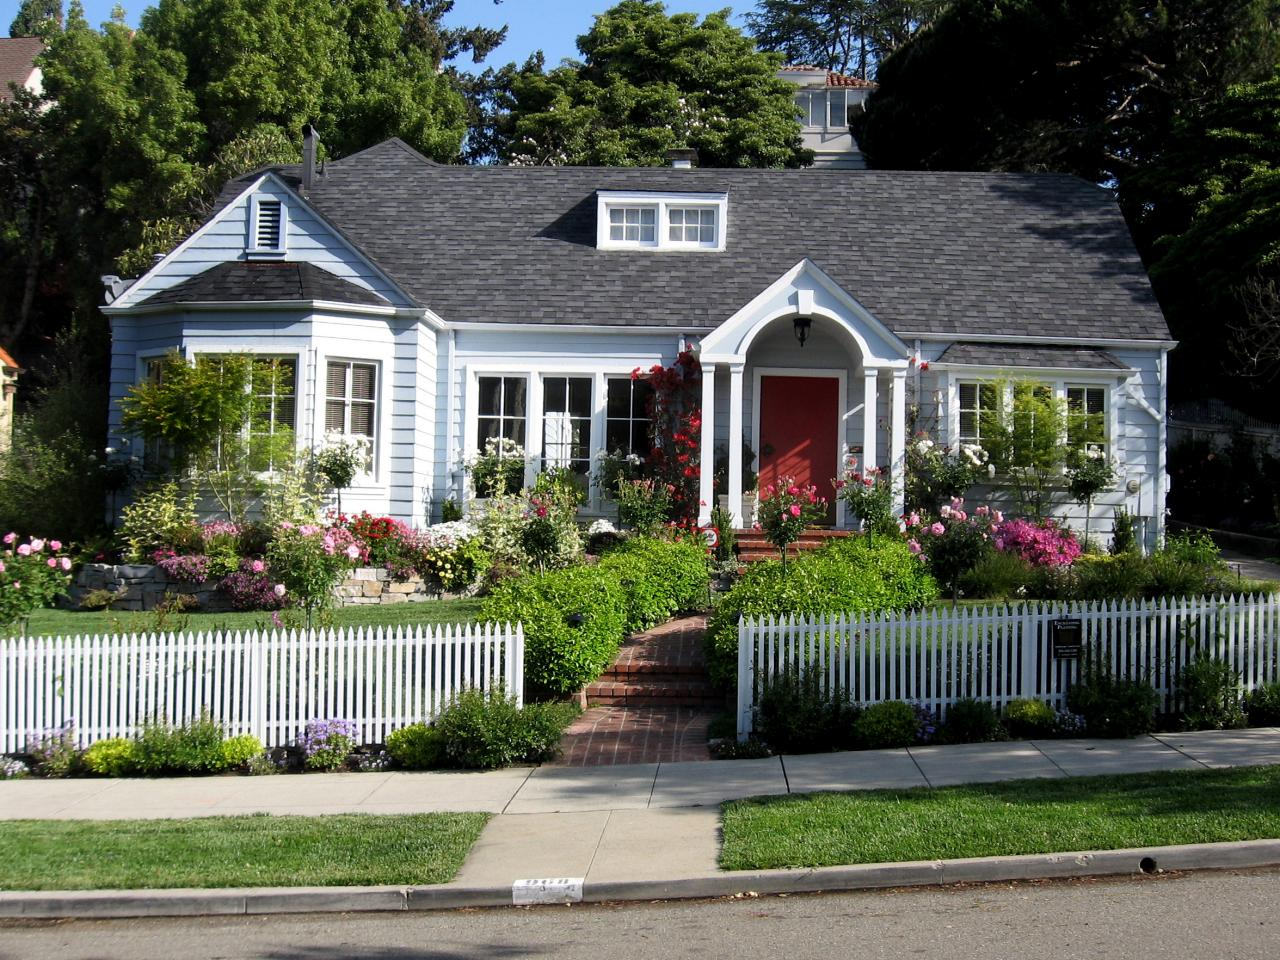 Landscaping tips that can help sell your home hgtv for Front lawn design